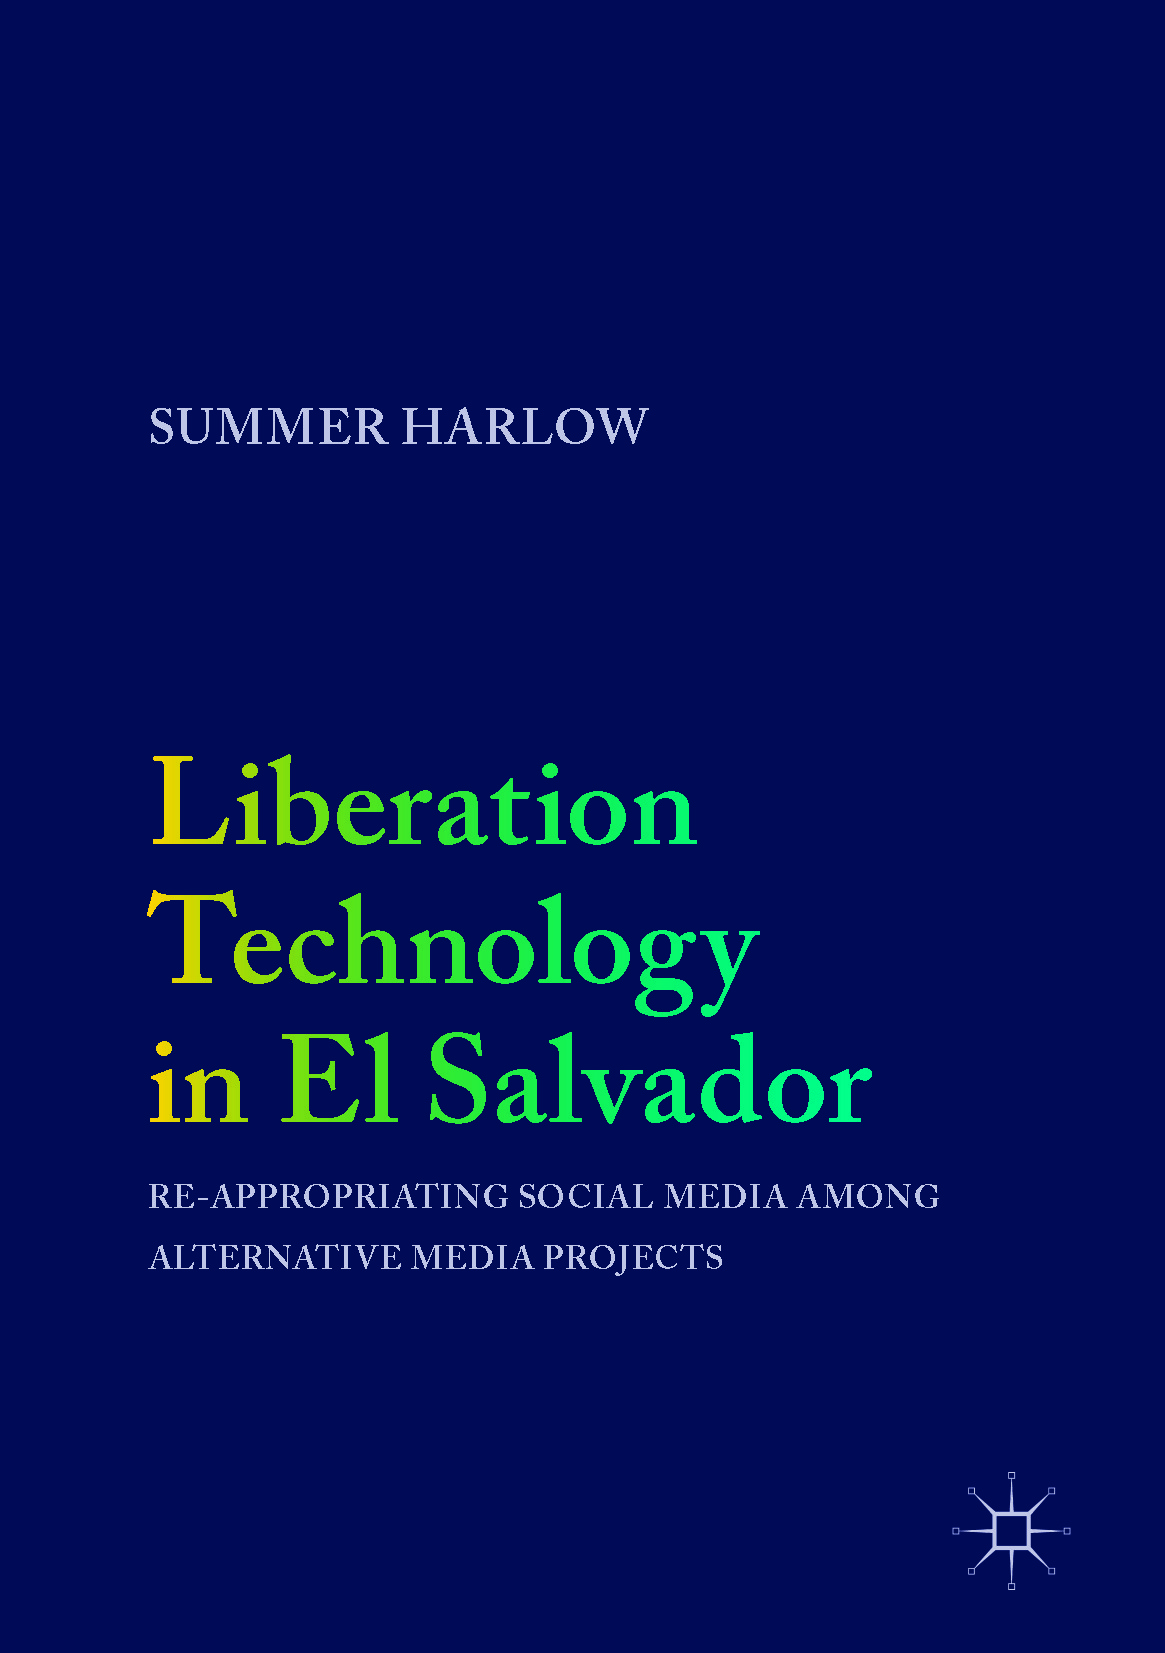 Harlow, Summer - Liberation Technology in El Salvador, ebook